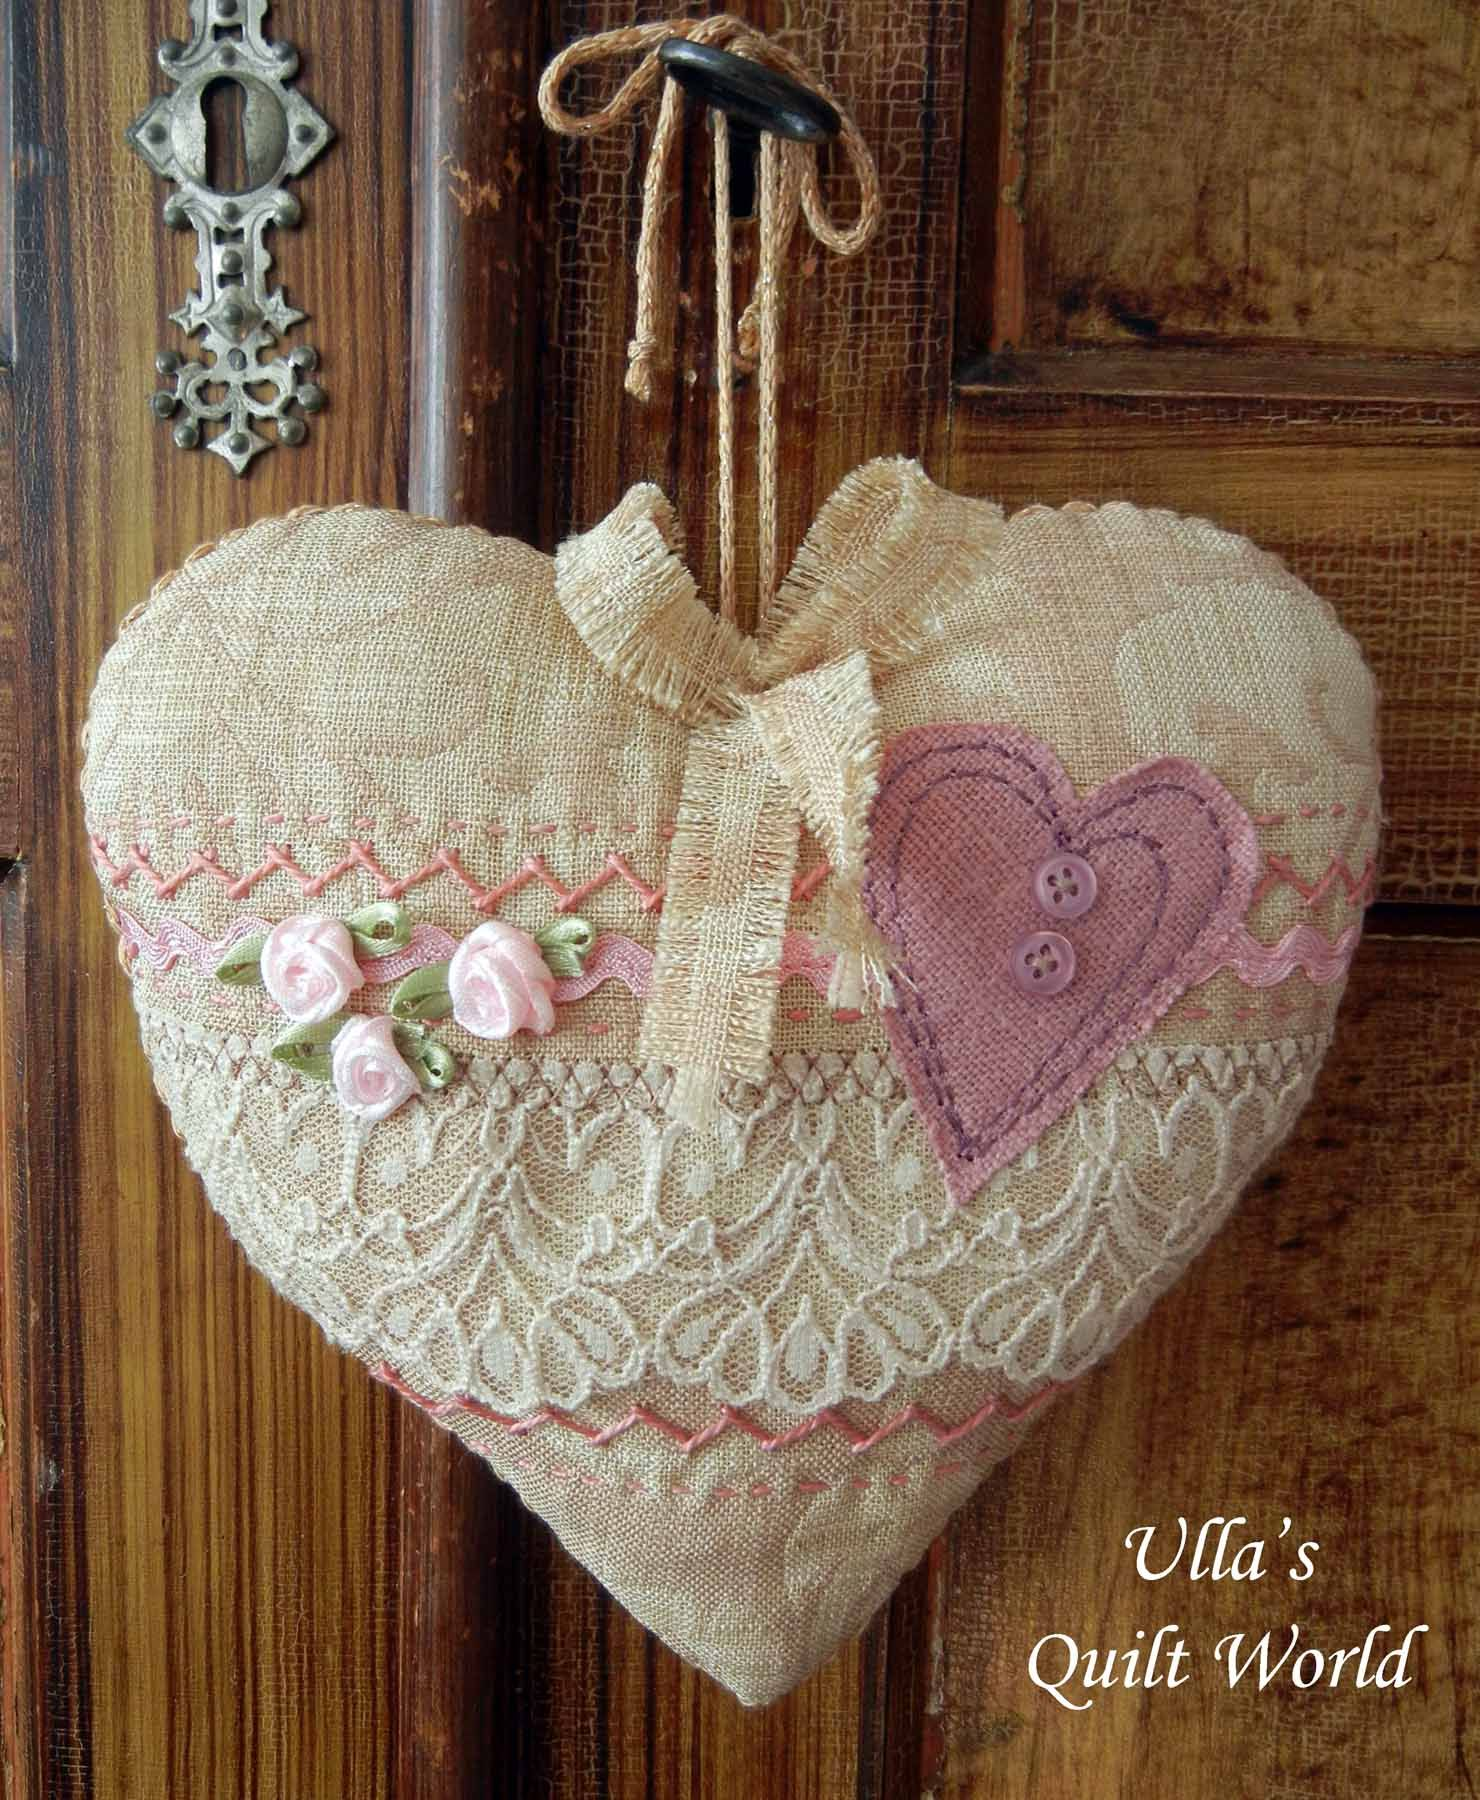 Quilted hearts. I have added more photos to my quilt blog: Ulla's Quilt World.